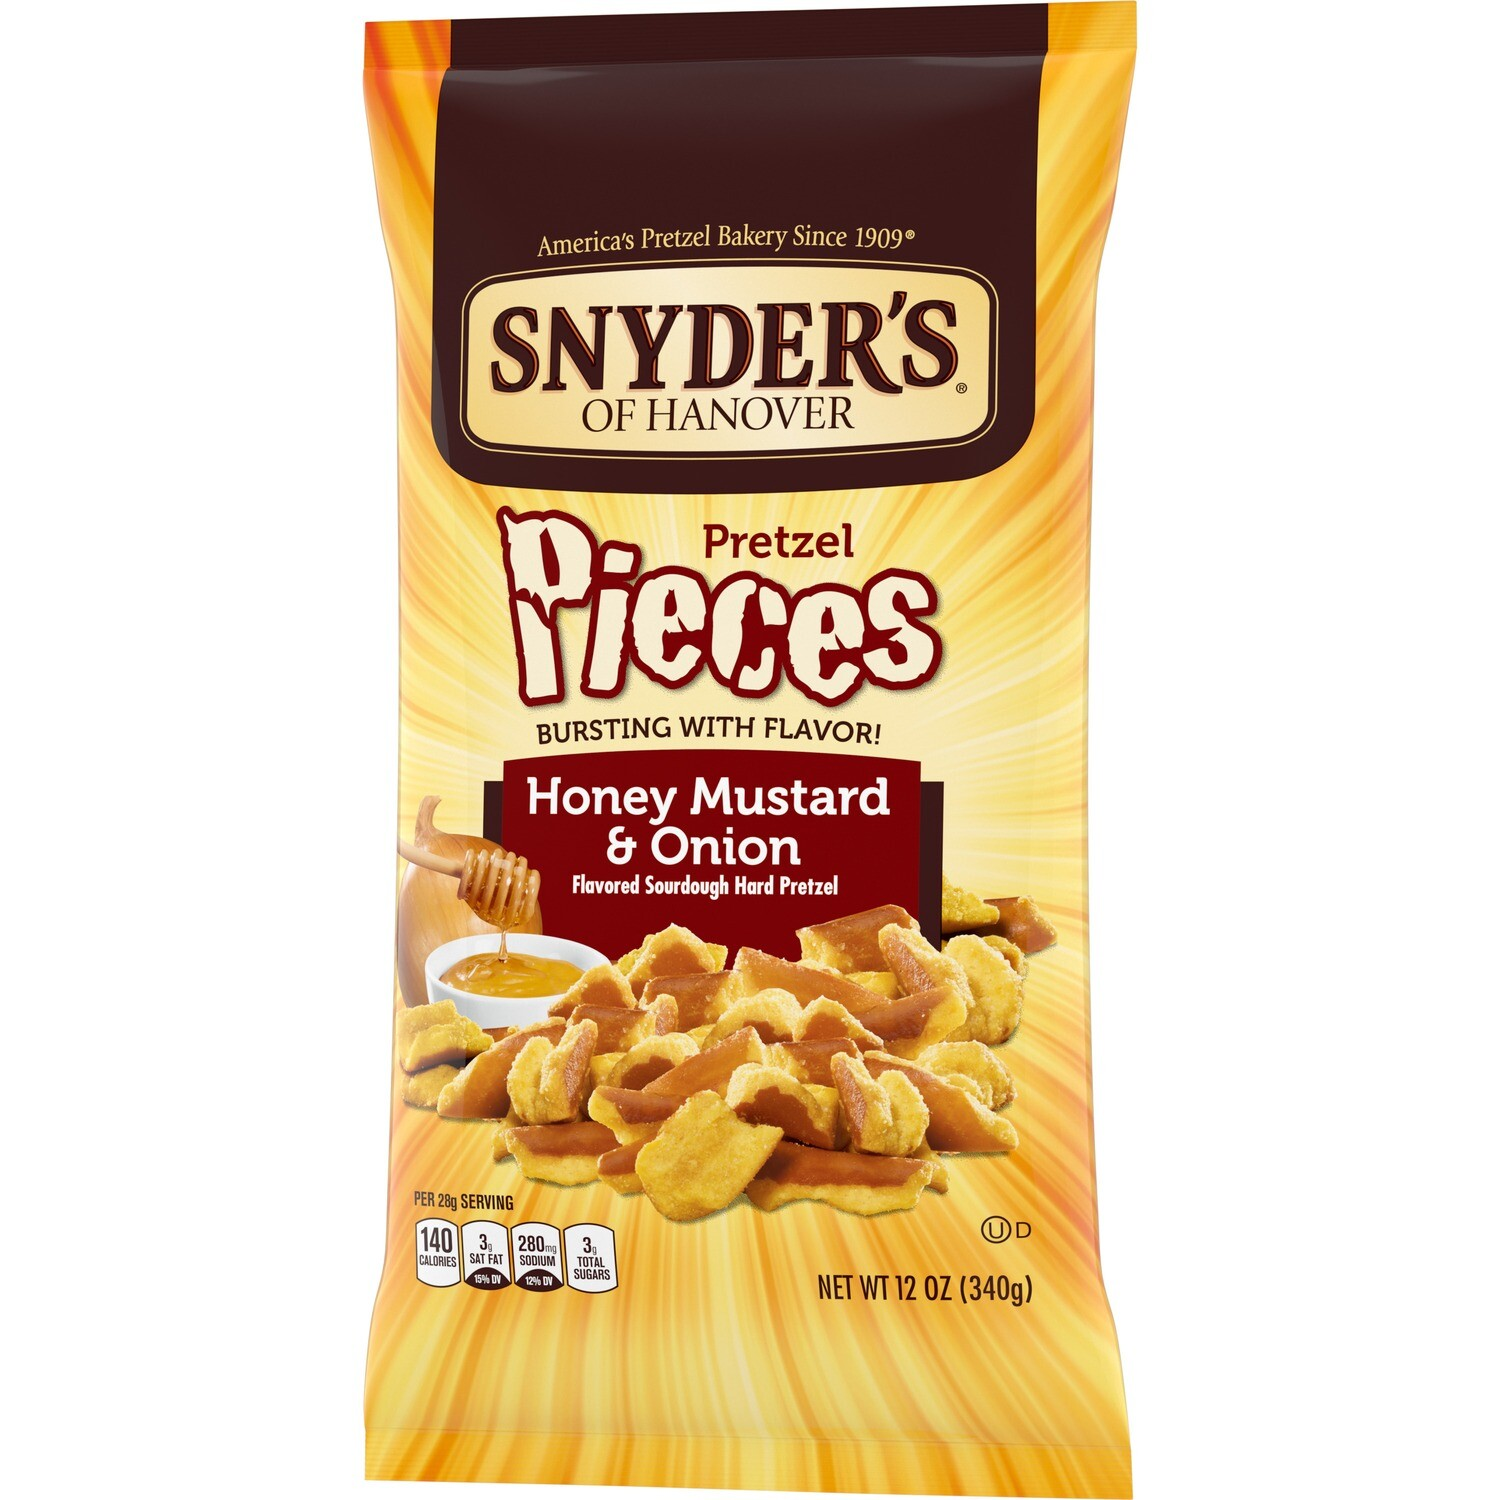 Snyder's of Hanover Honey Mustard Onion Pretzel Pieces (12 oz bag)